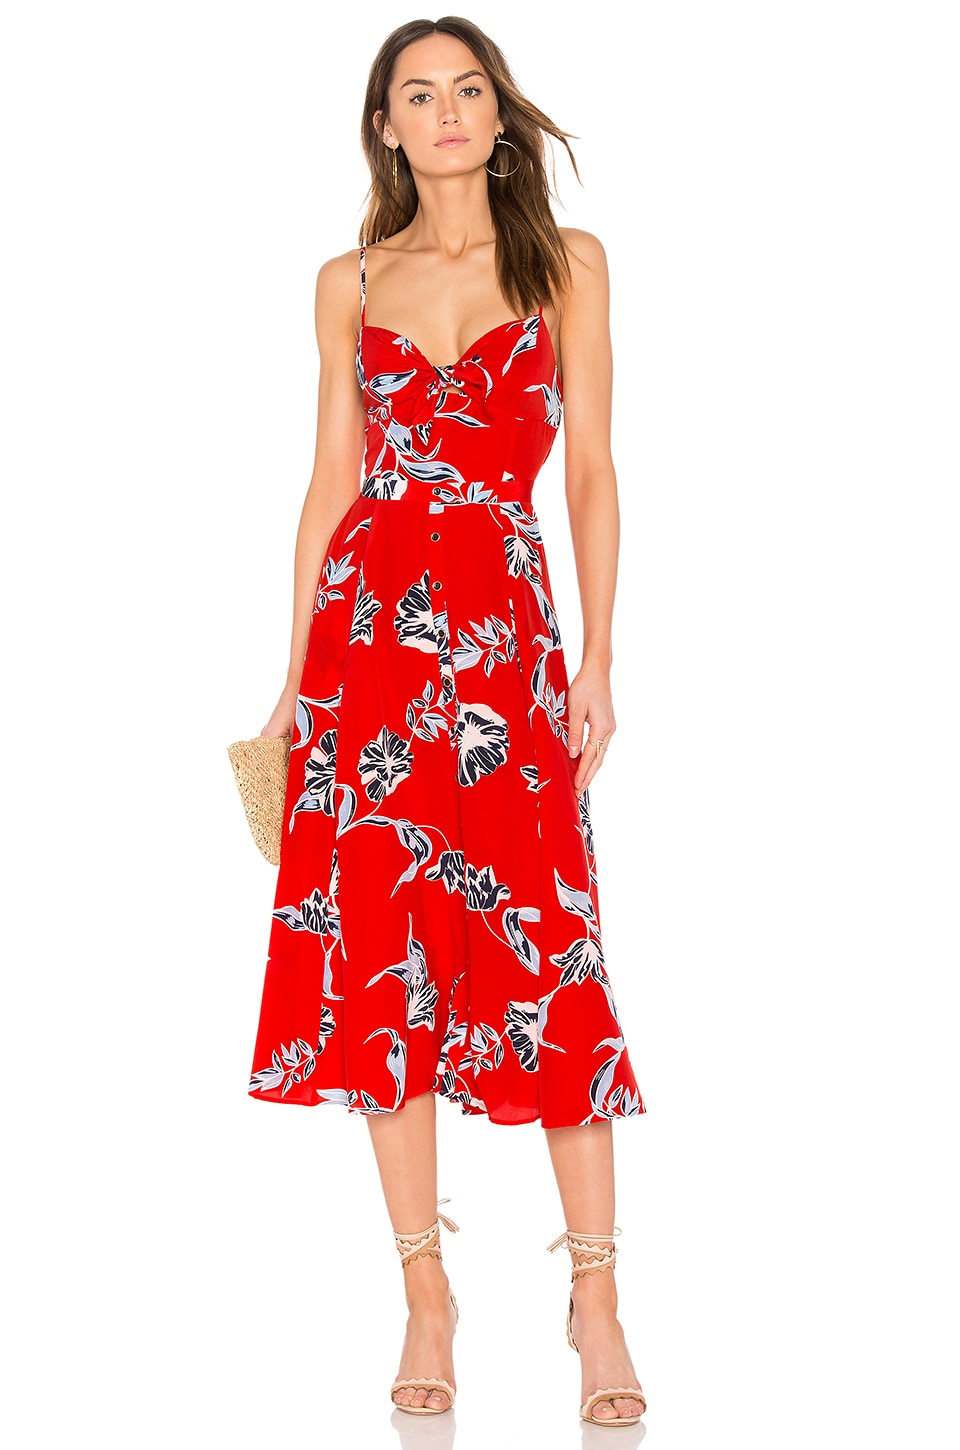 Yumi Kim Pretty Woman Dress in Hello Beautiful Red | REVOLVE